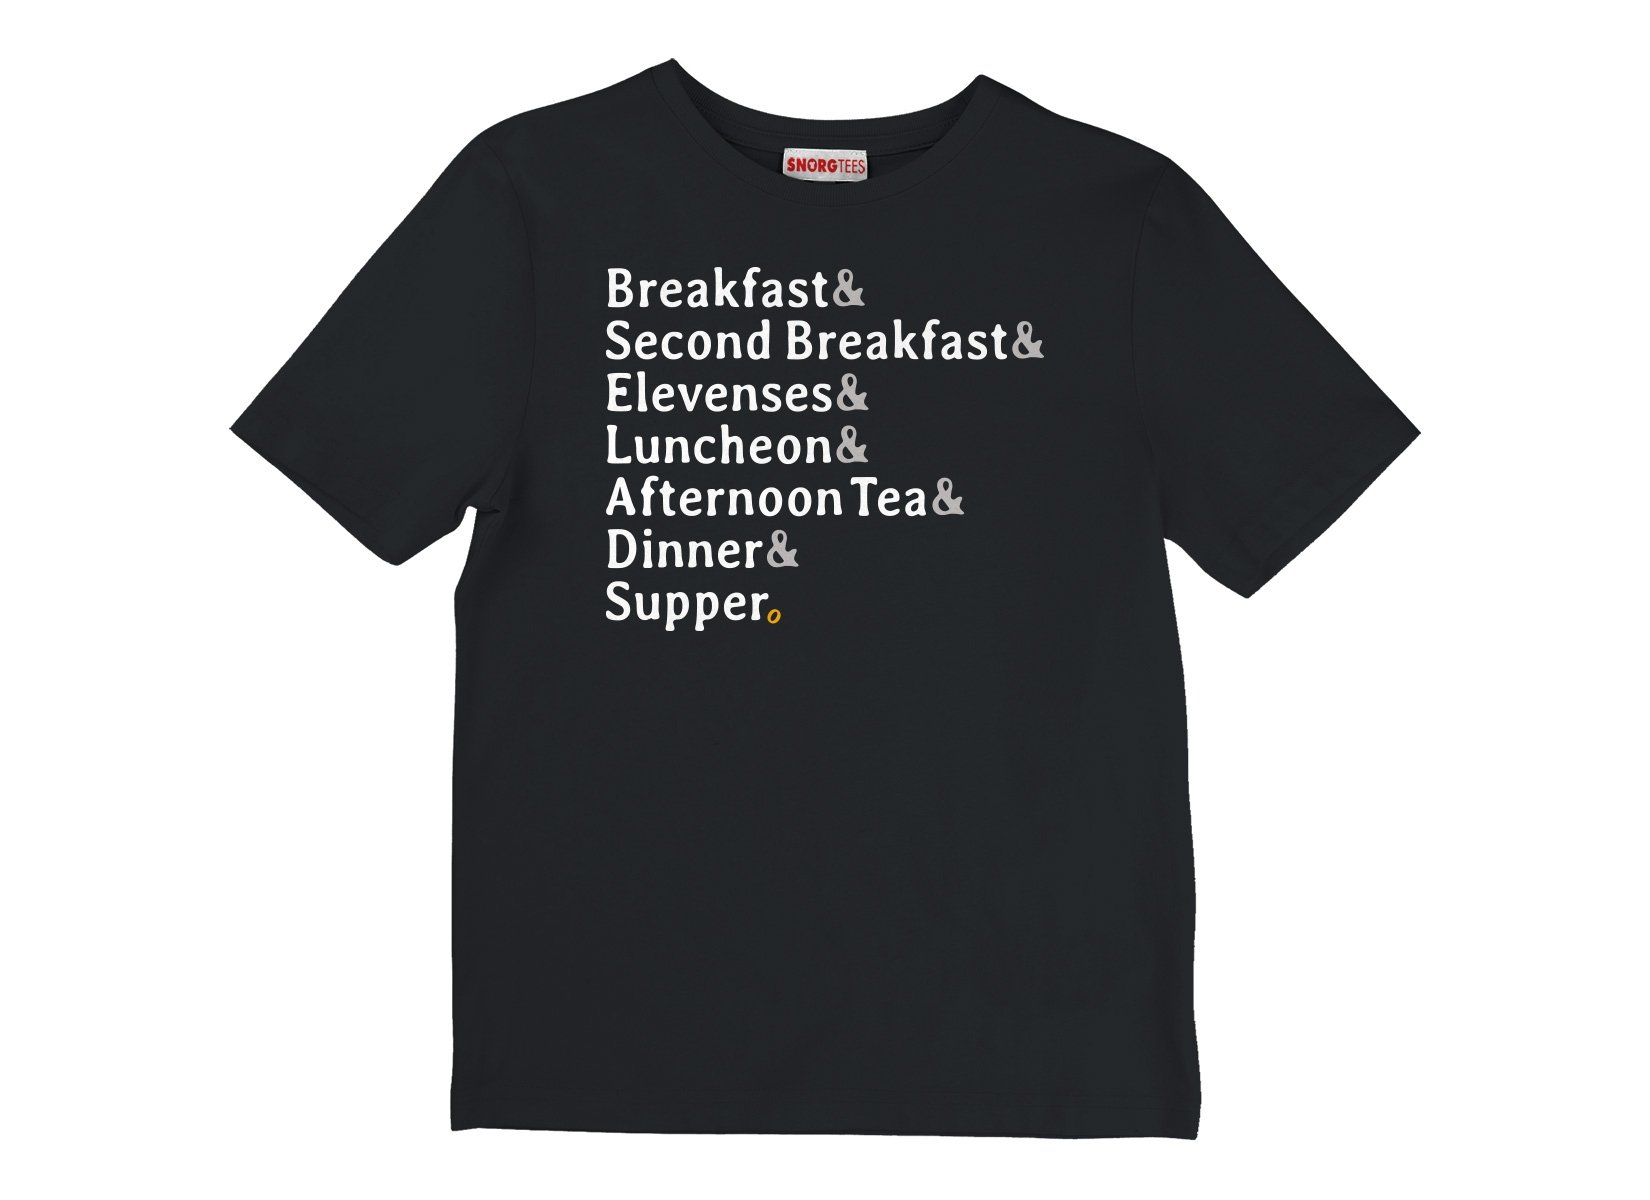 Typical Daily Meals on Kids T-Shirt